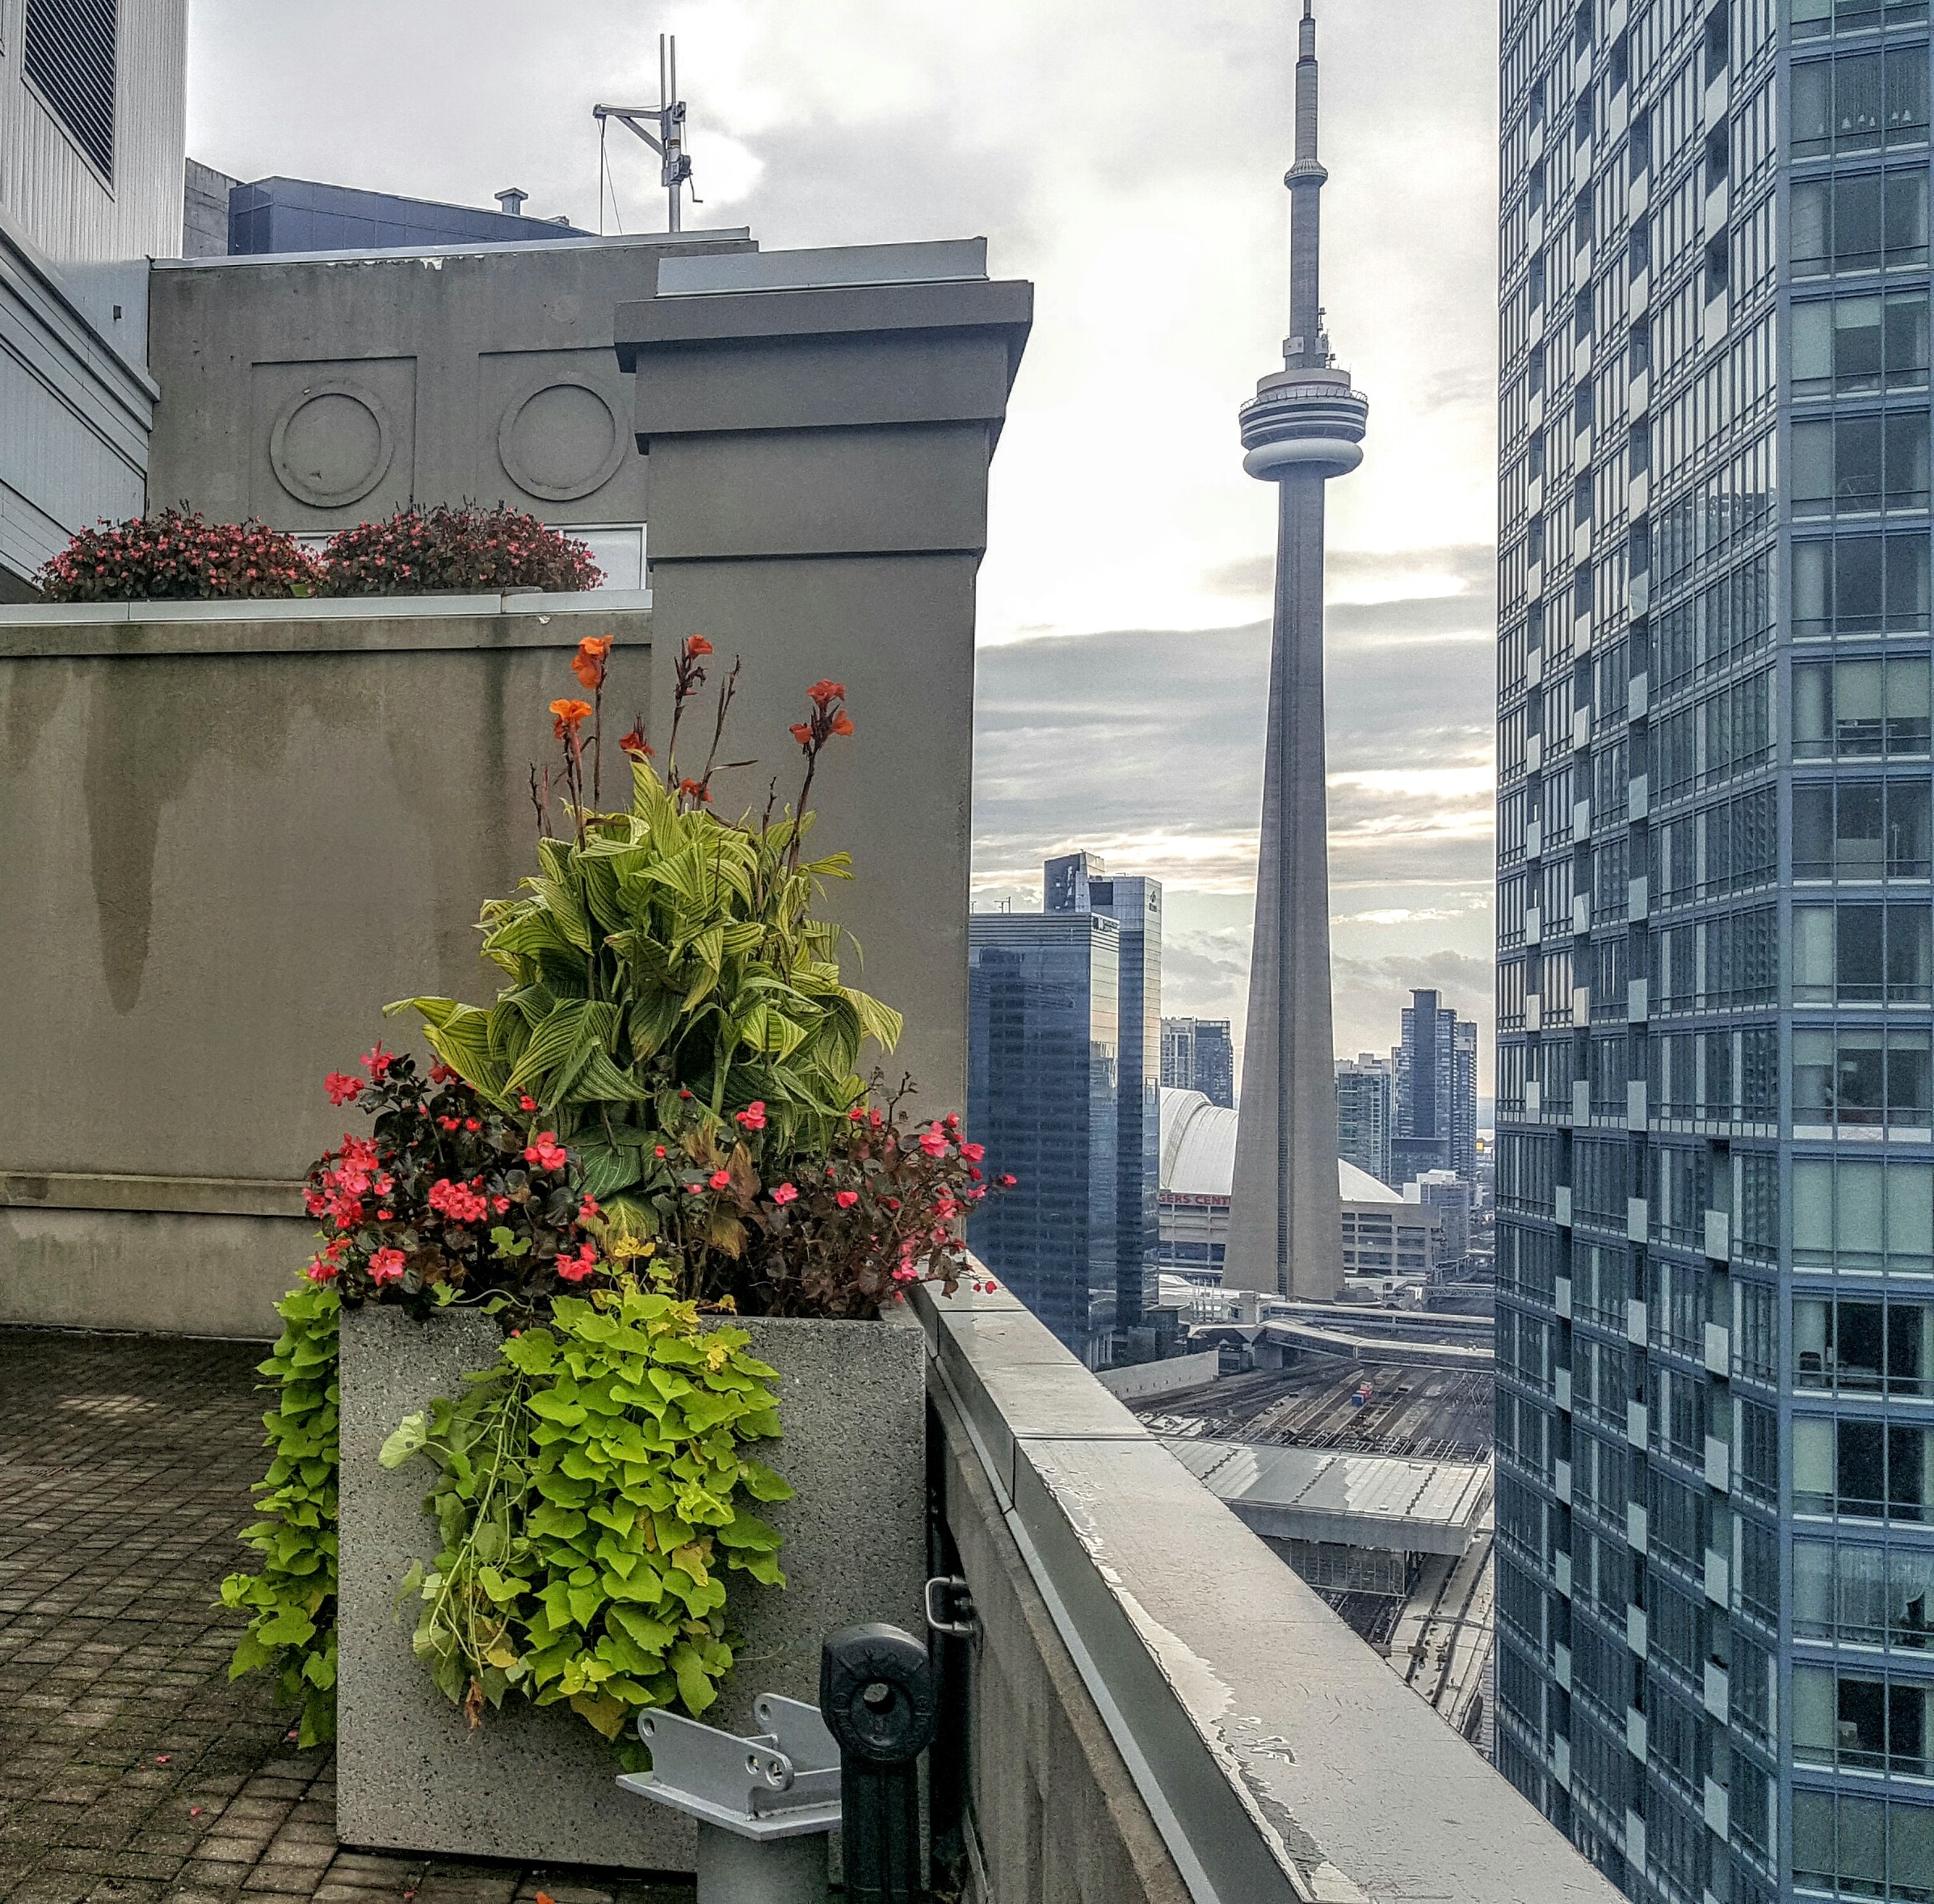 CN Tower Ranked One Of The Most Popular Landmarks In The World